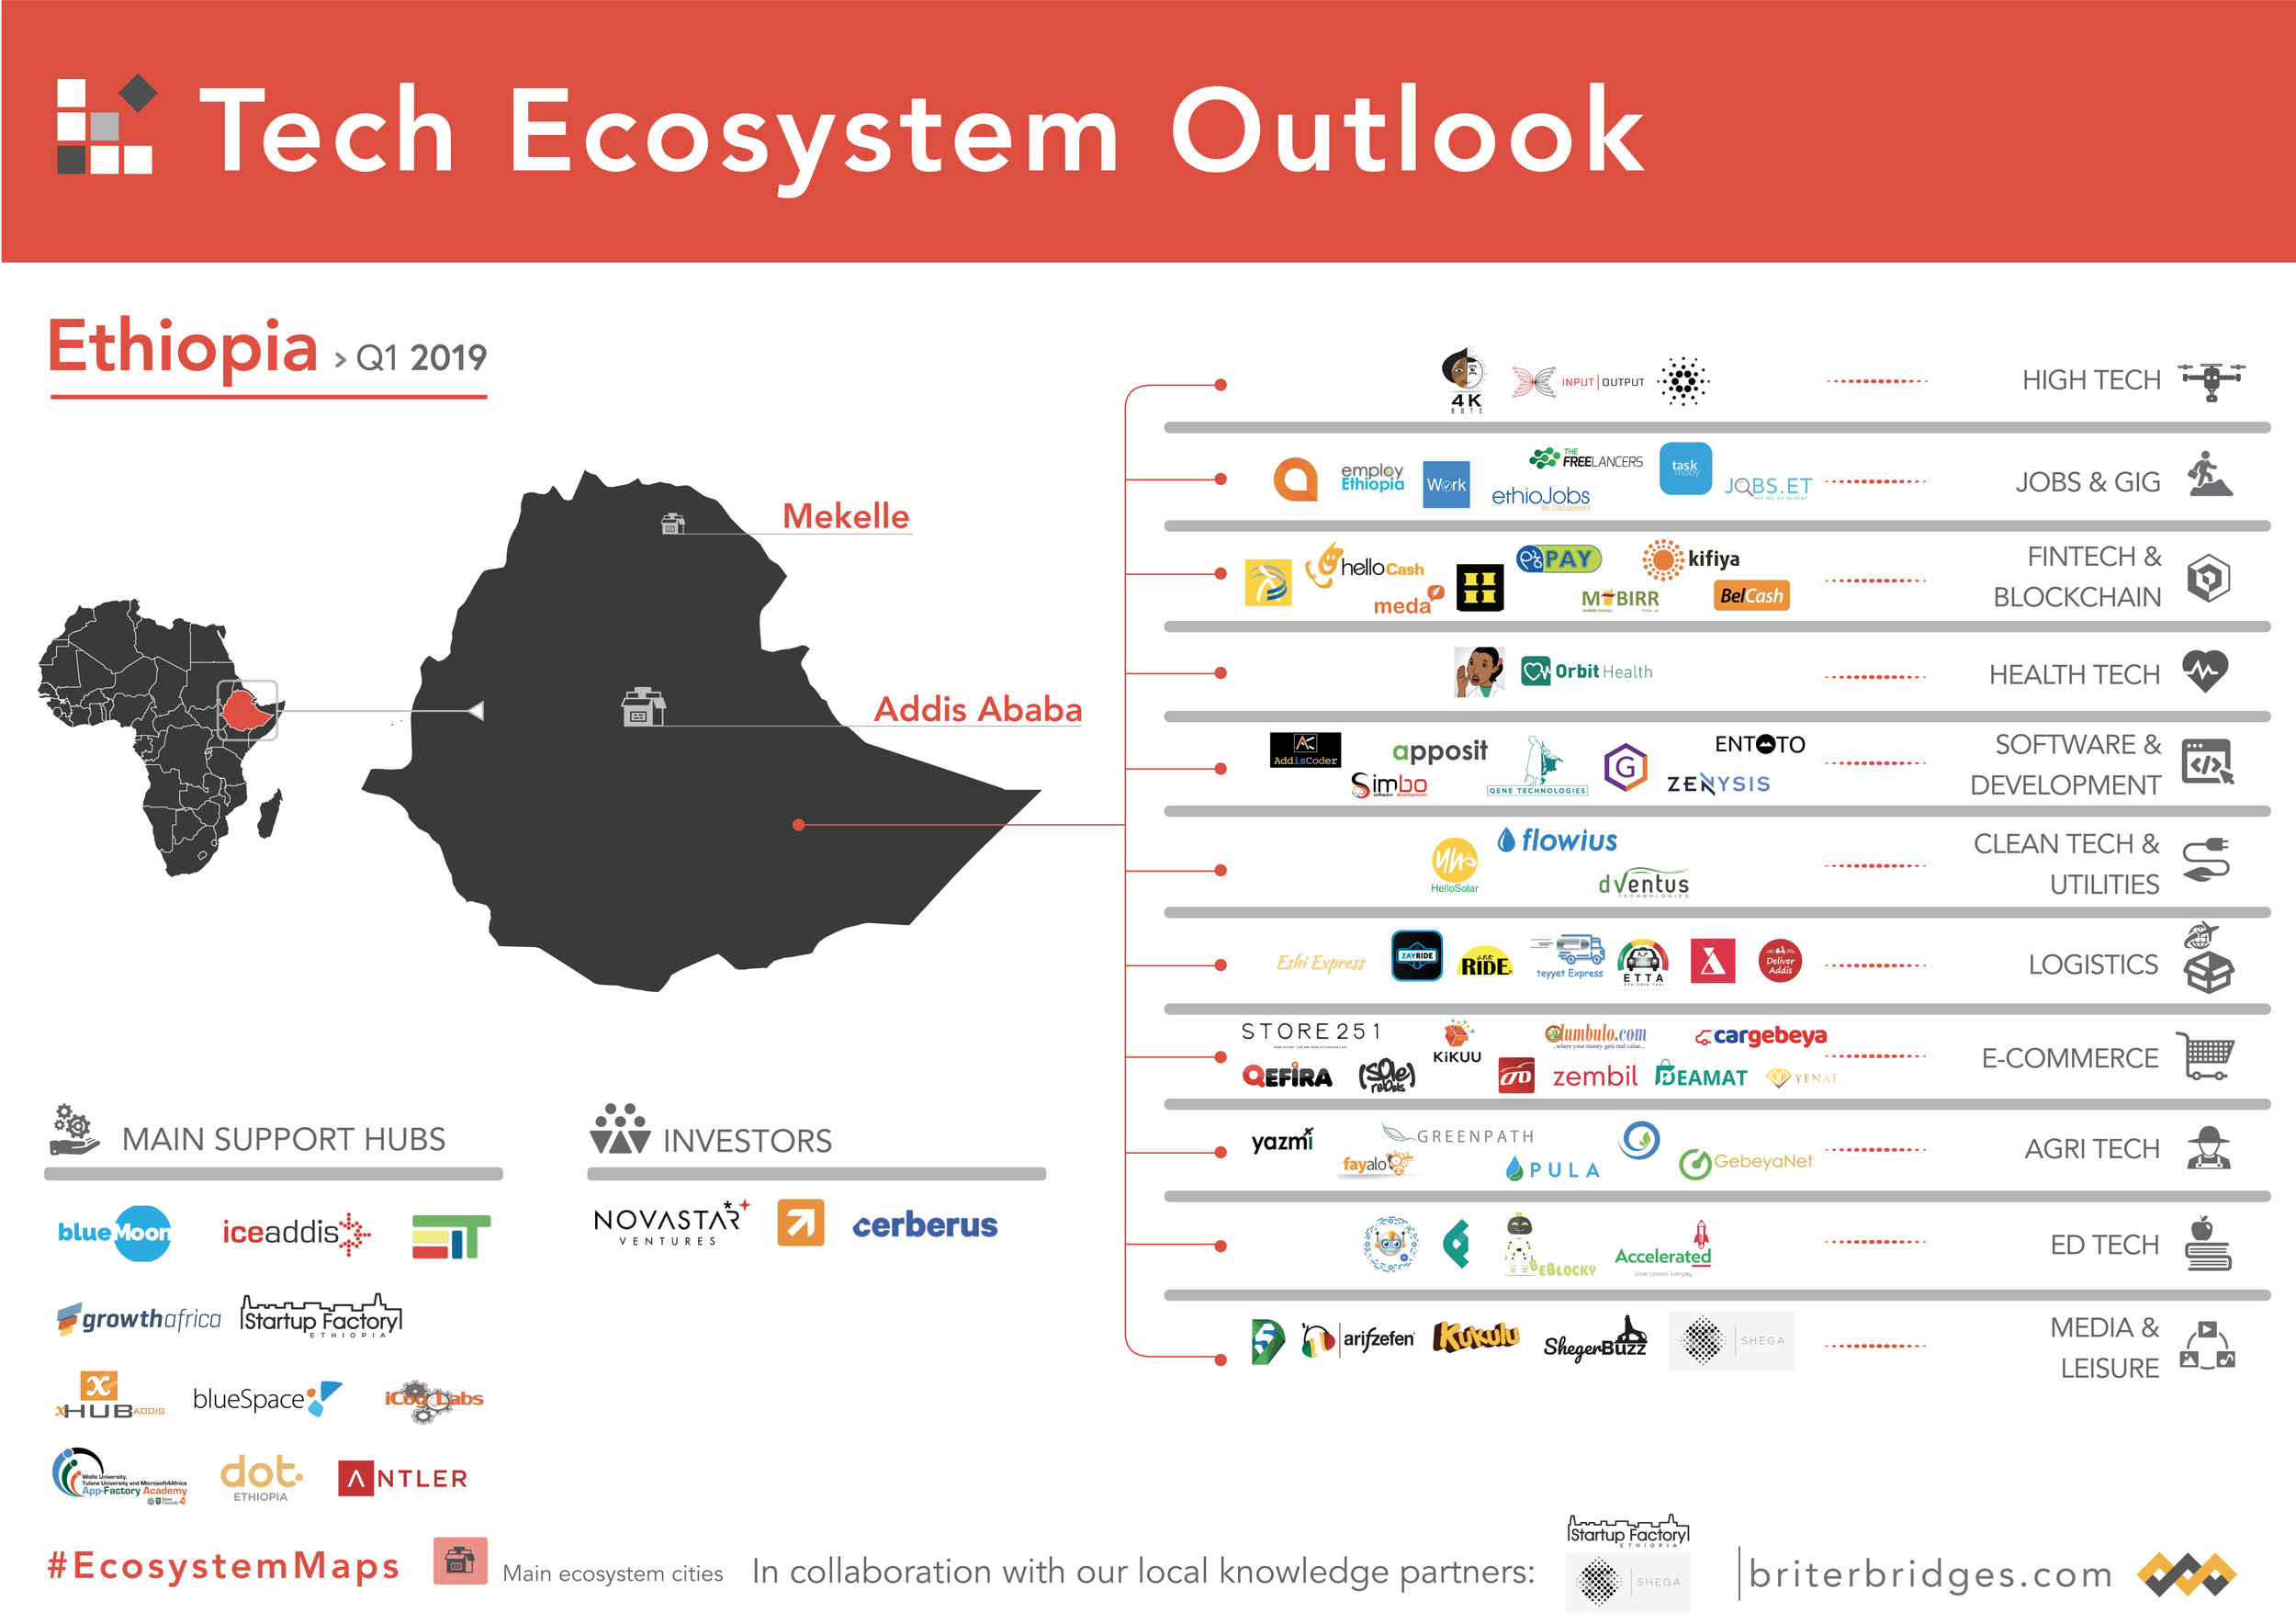 Ethiopia's Tech Ecosystem Map